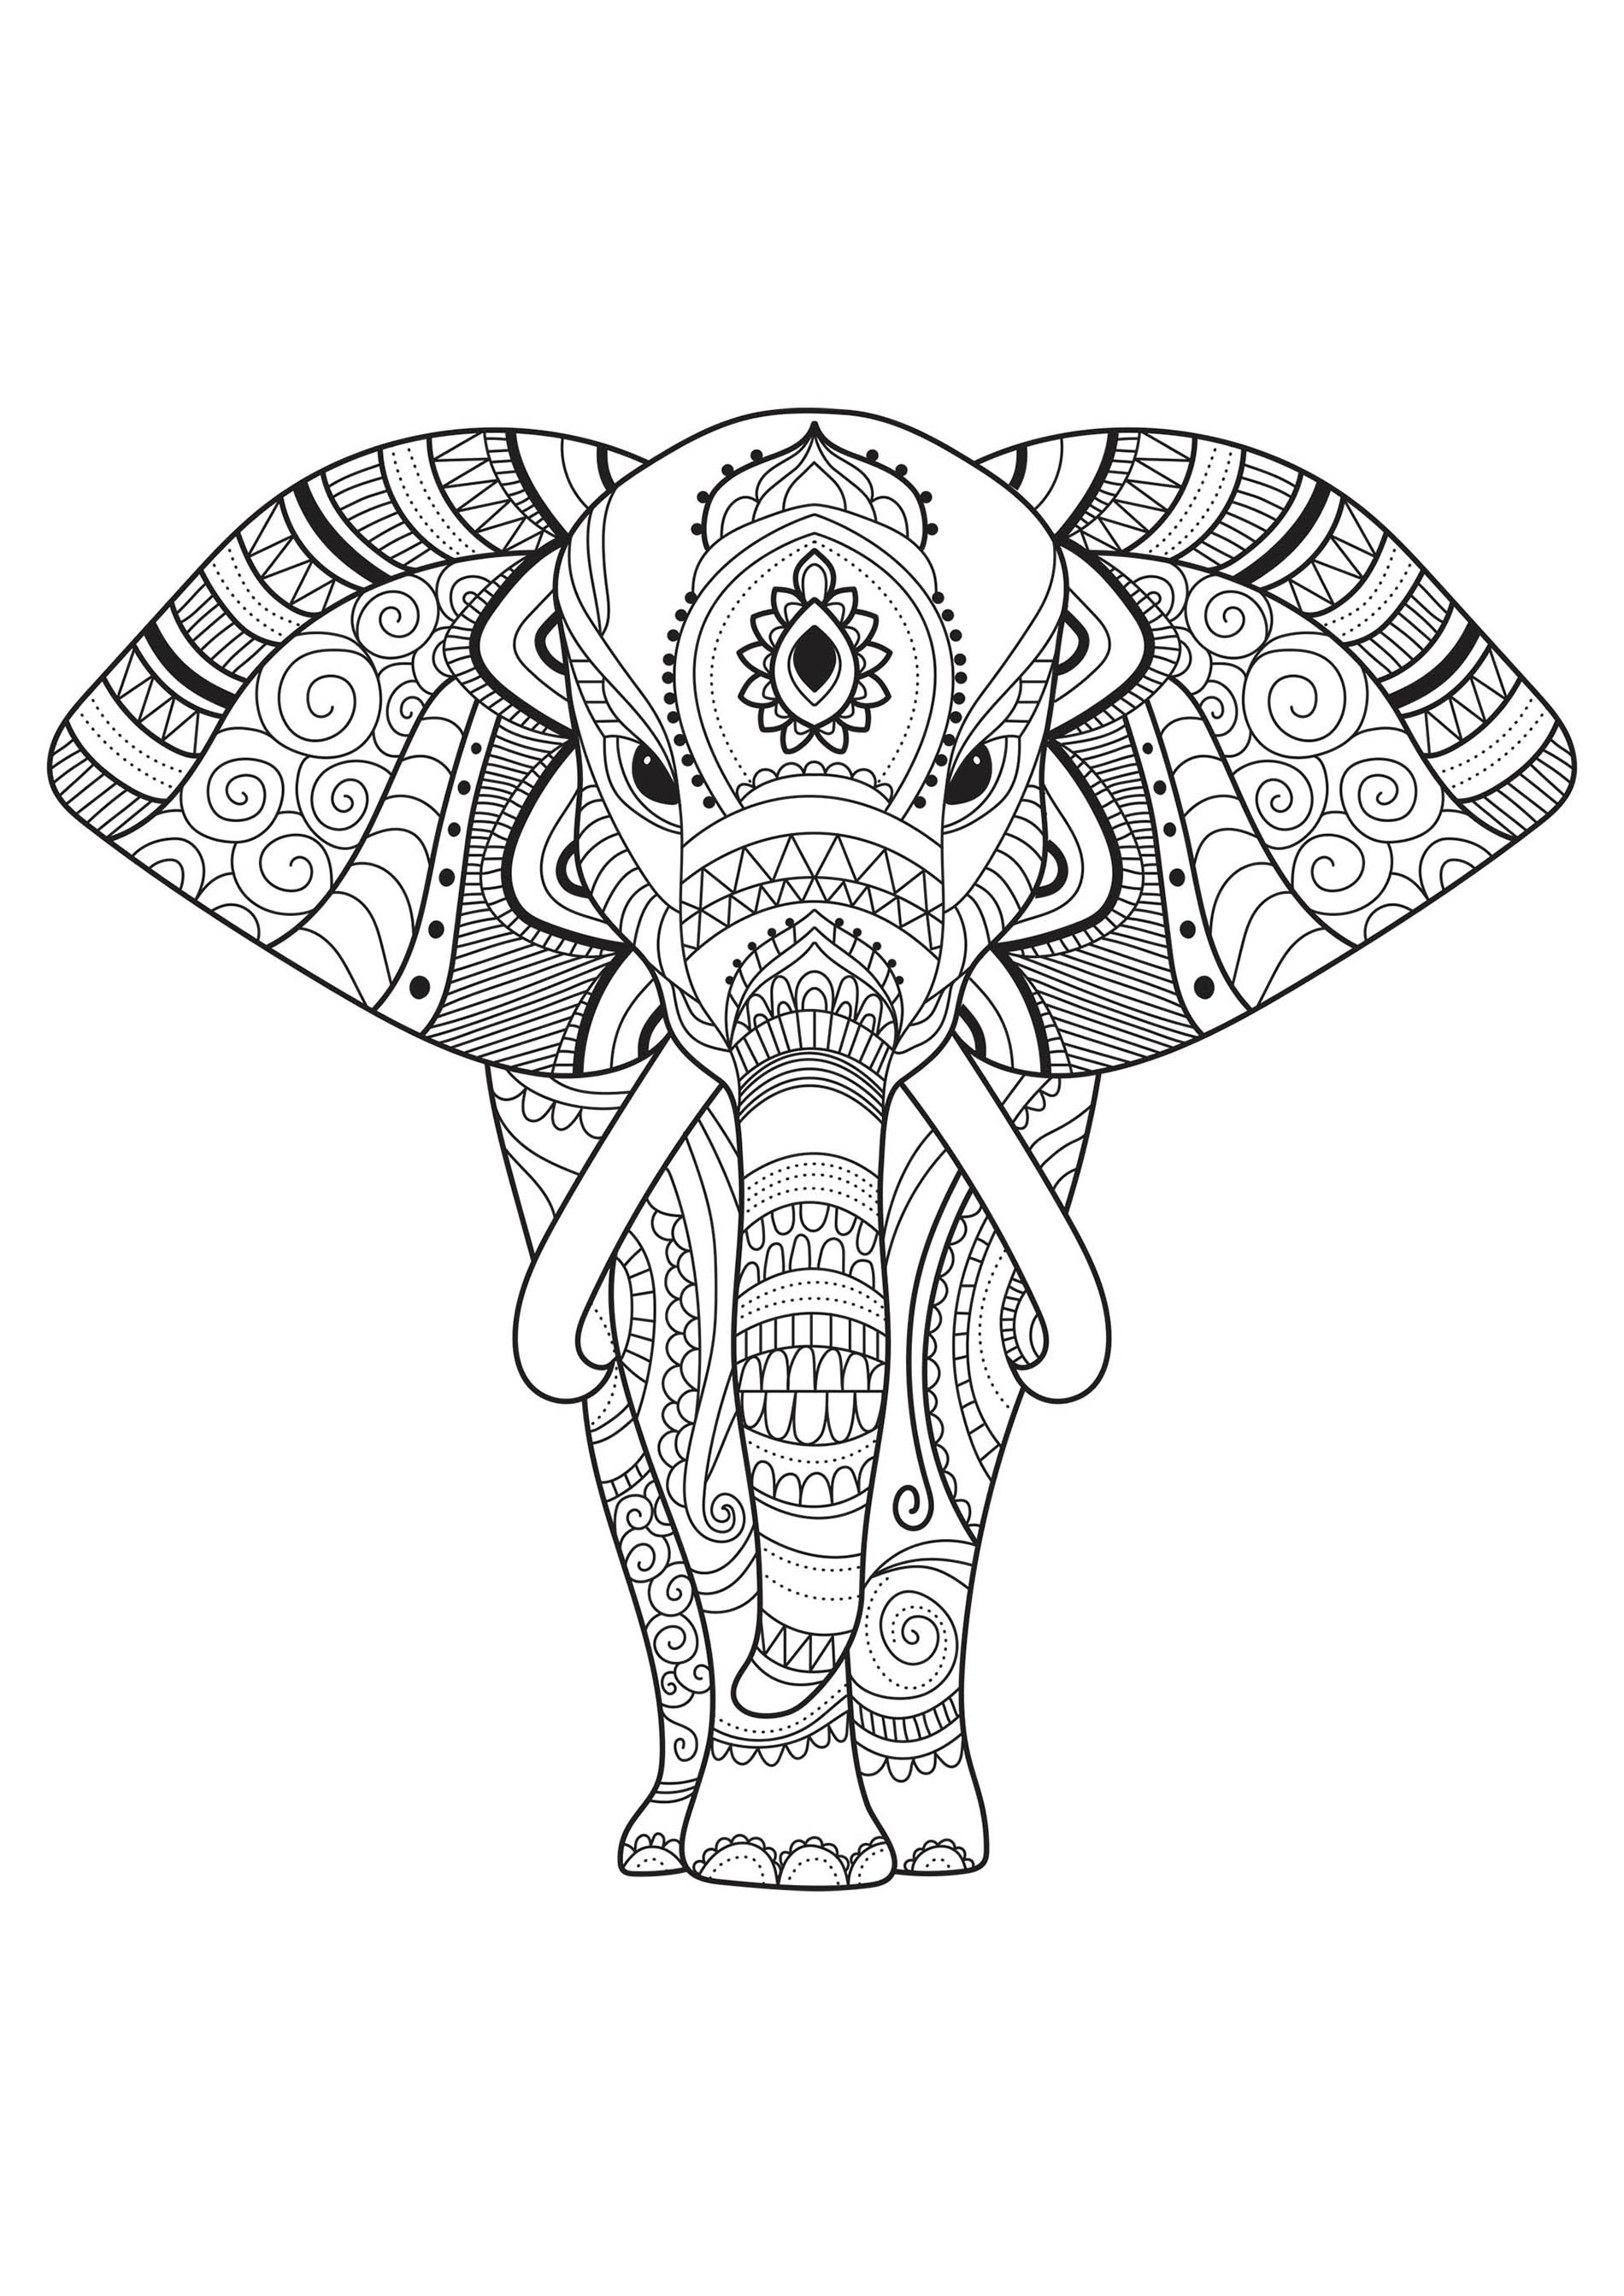 coloring book elephant images elephant and the baby elephant book coloring images elephant